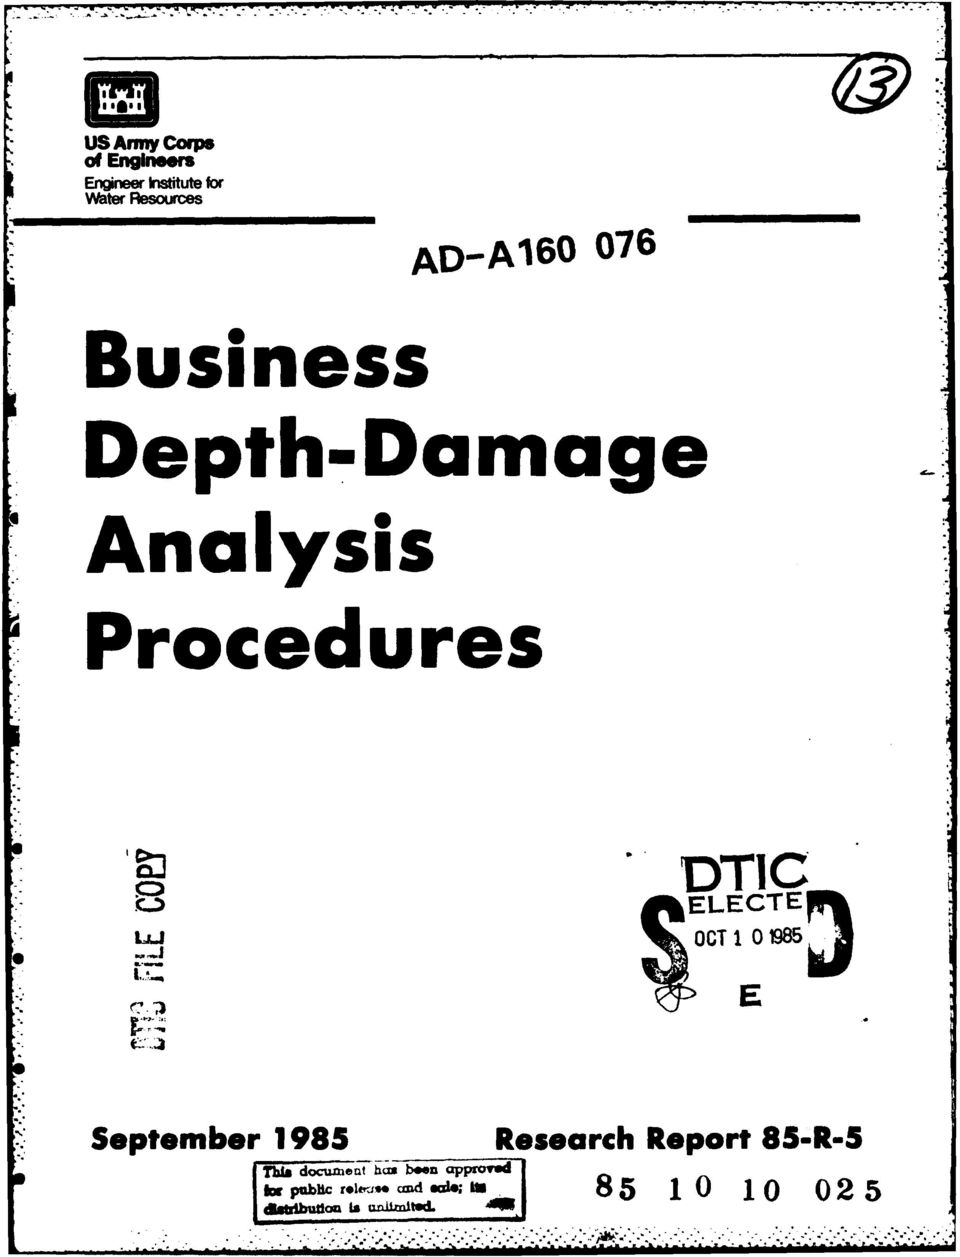 "IELECTE OC* 1985J September 1985 Research Report 85-R-5 ThI"" docunt"